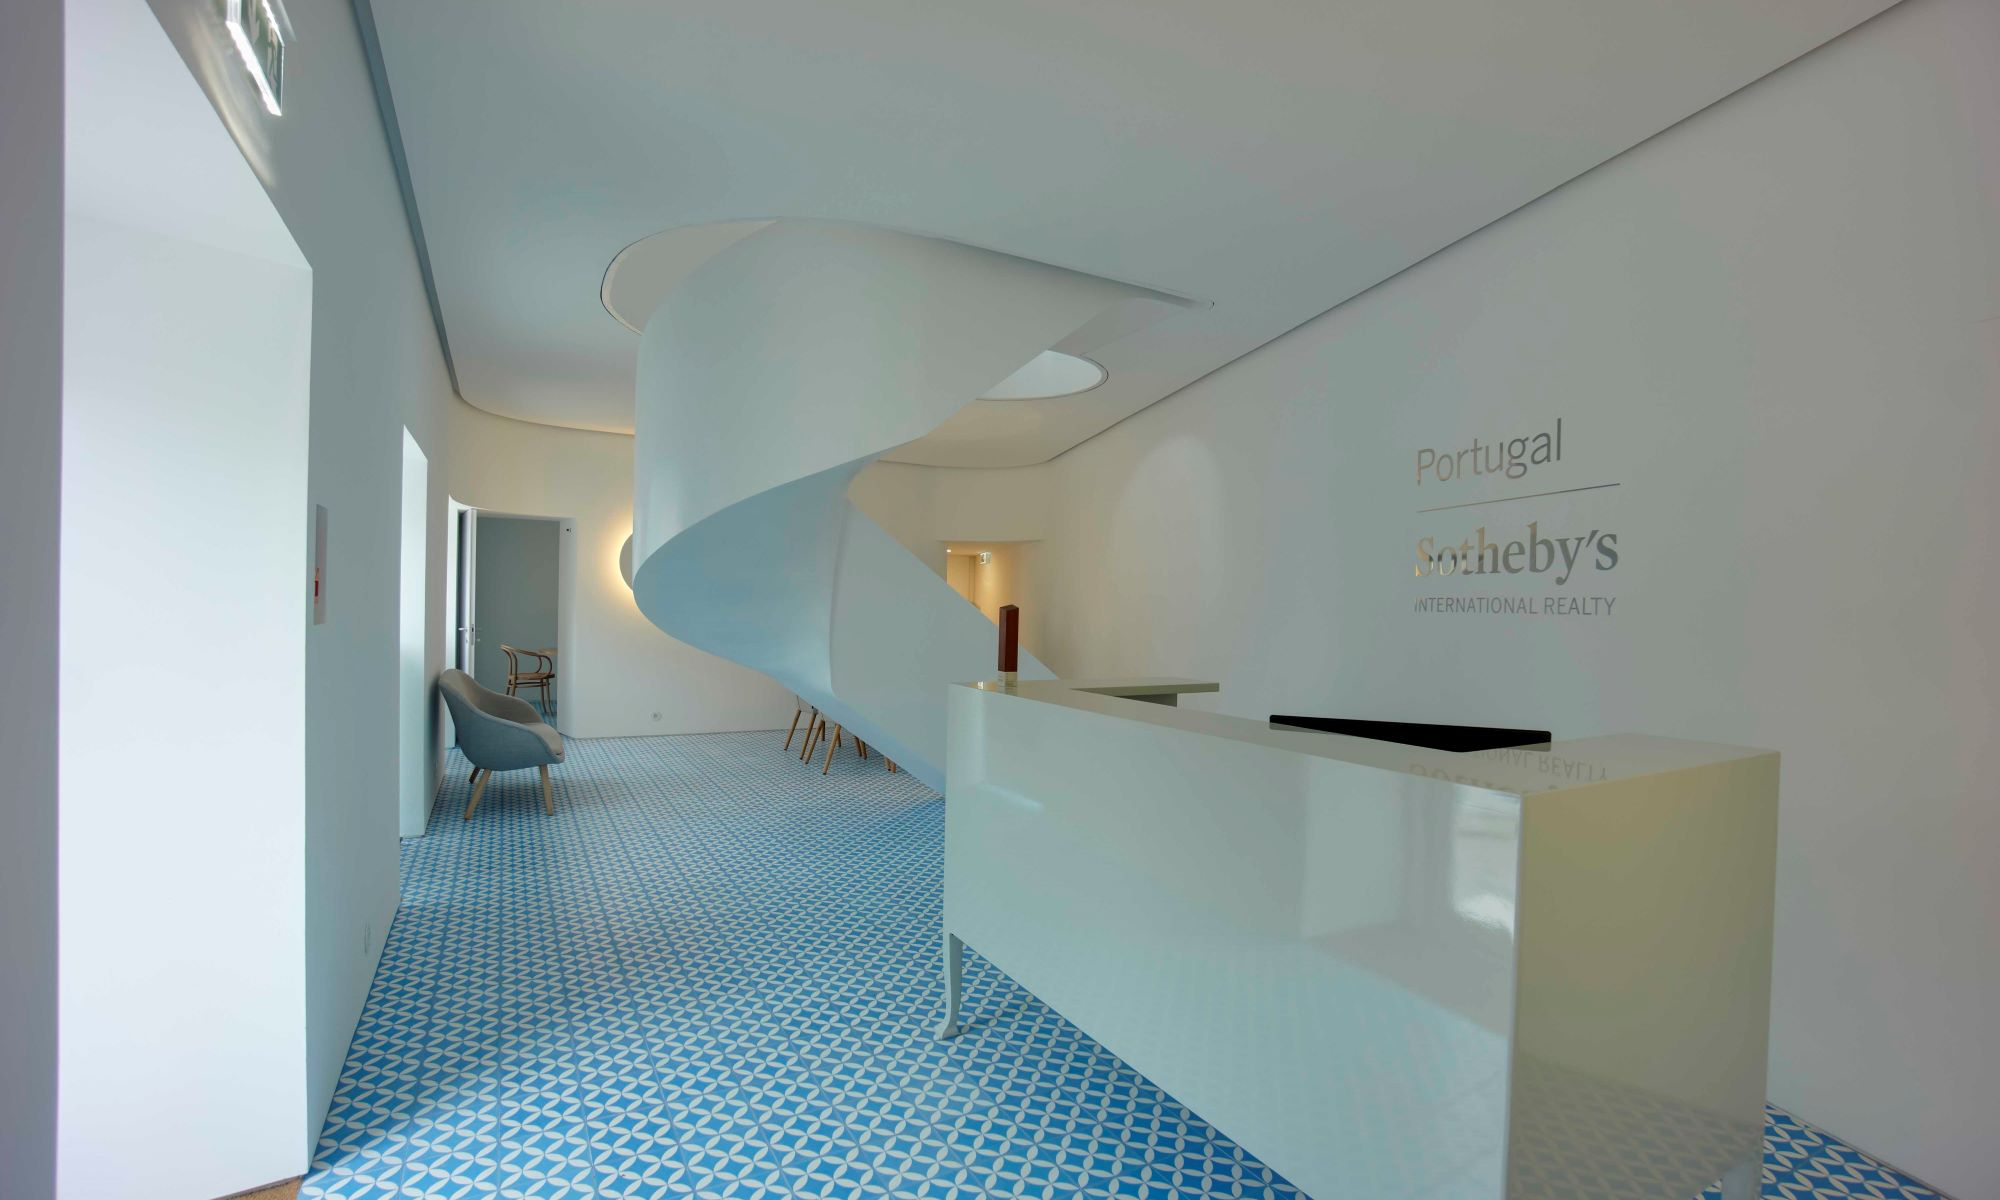 Office Portugal Sotheby's International Realty Photo